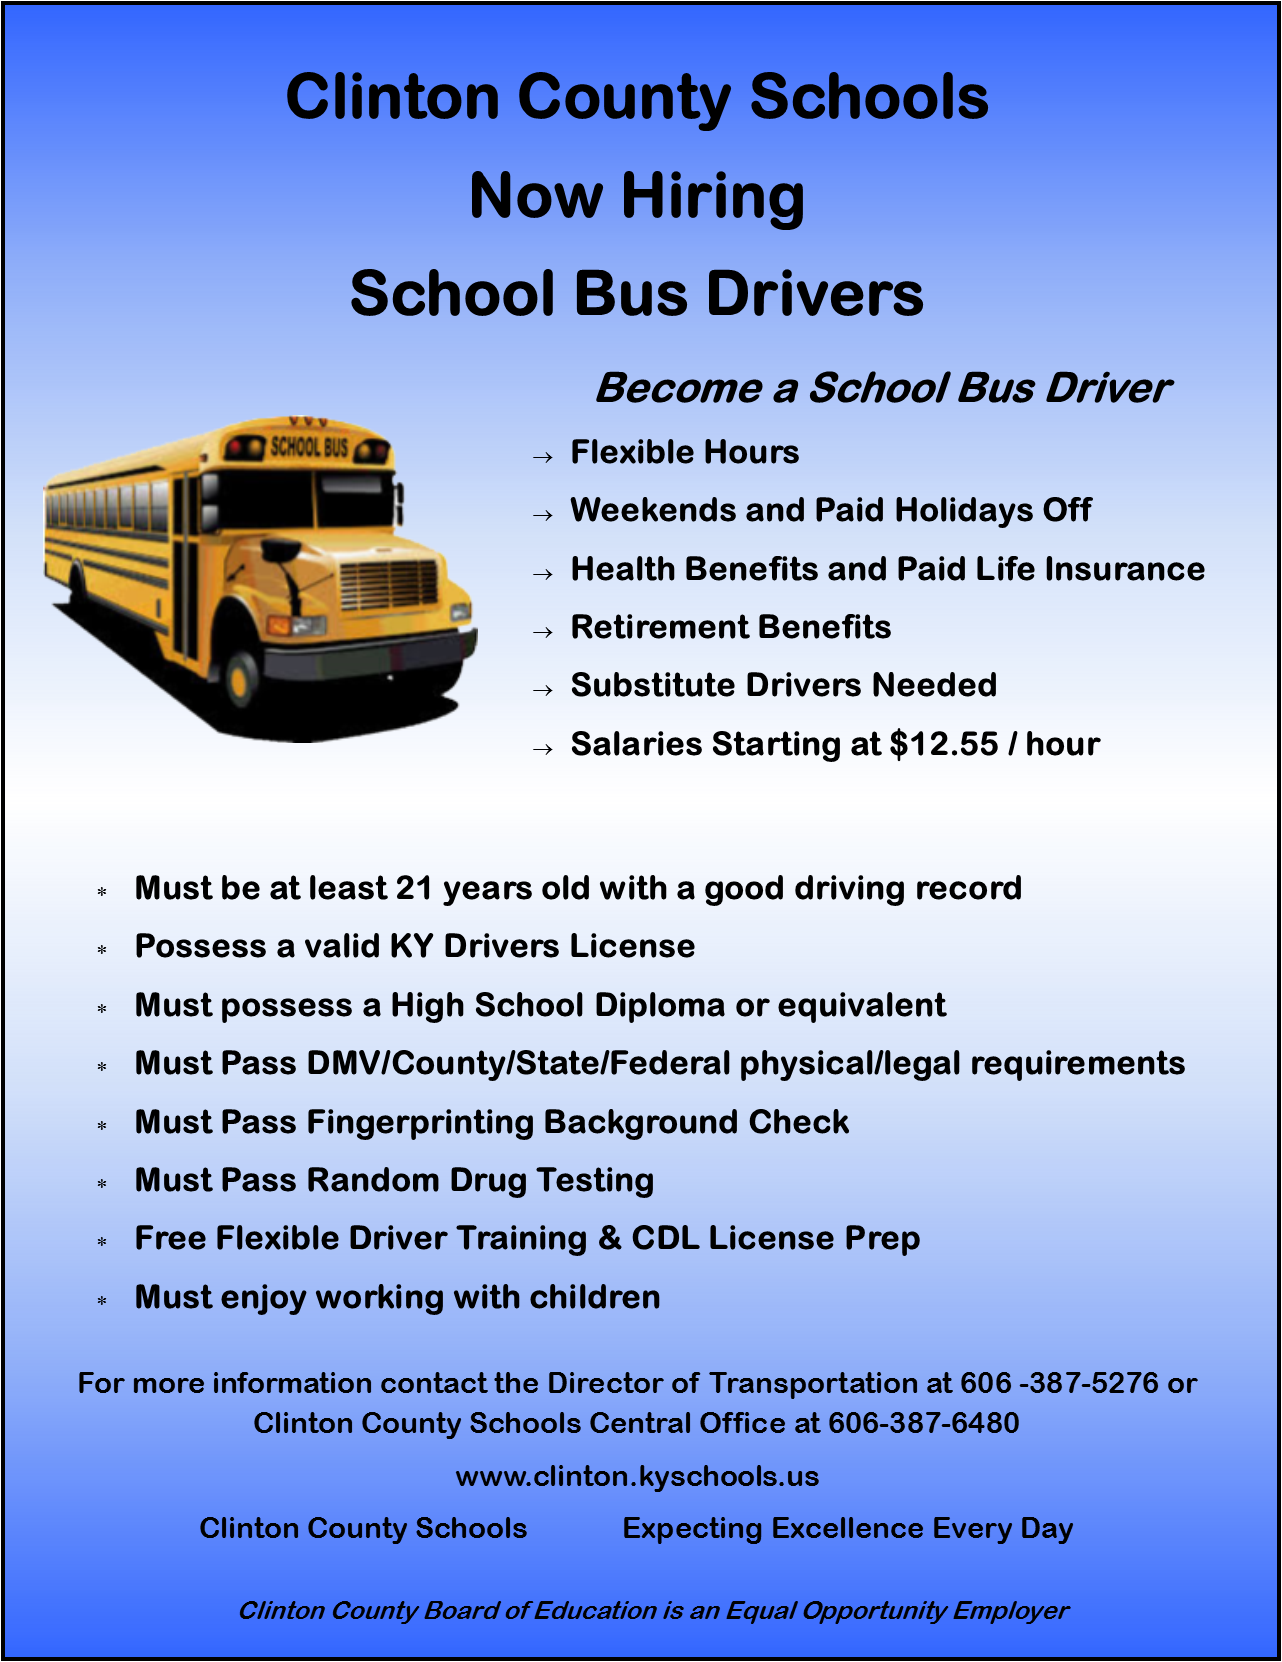 Become a School Bus Driver!